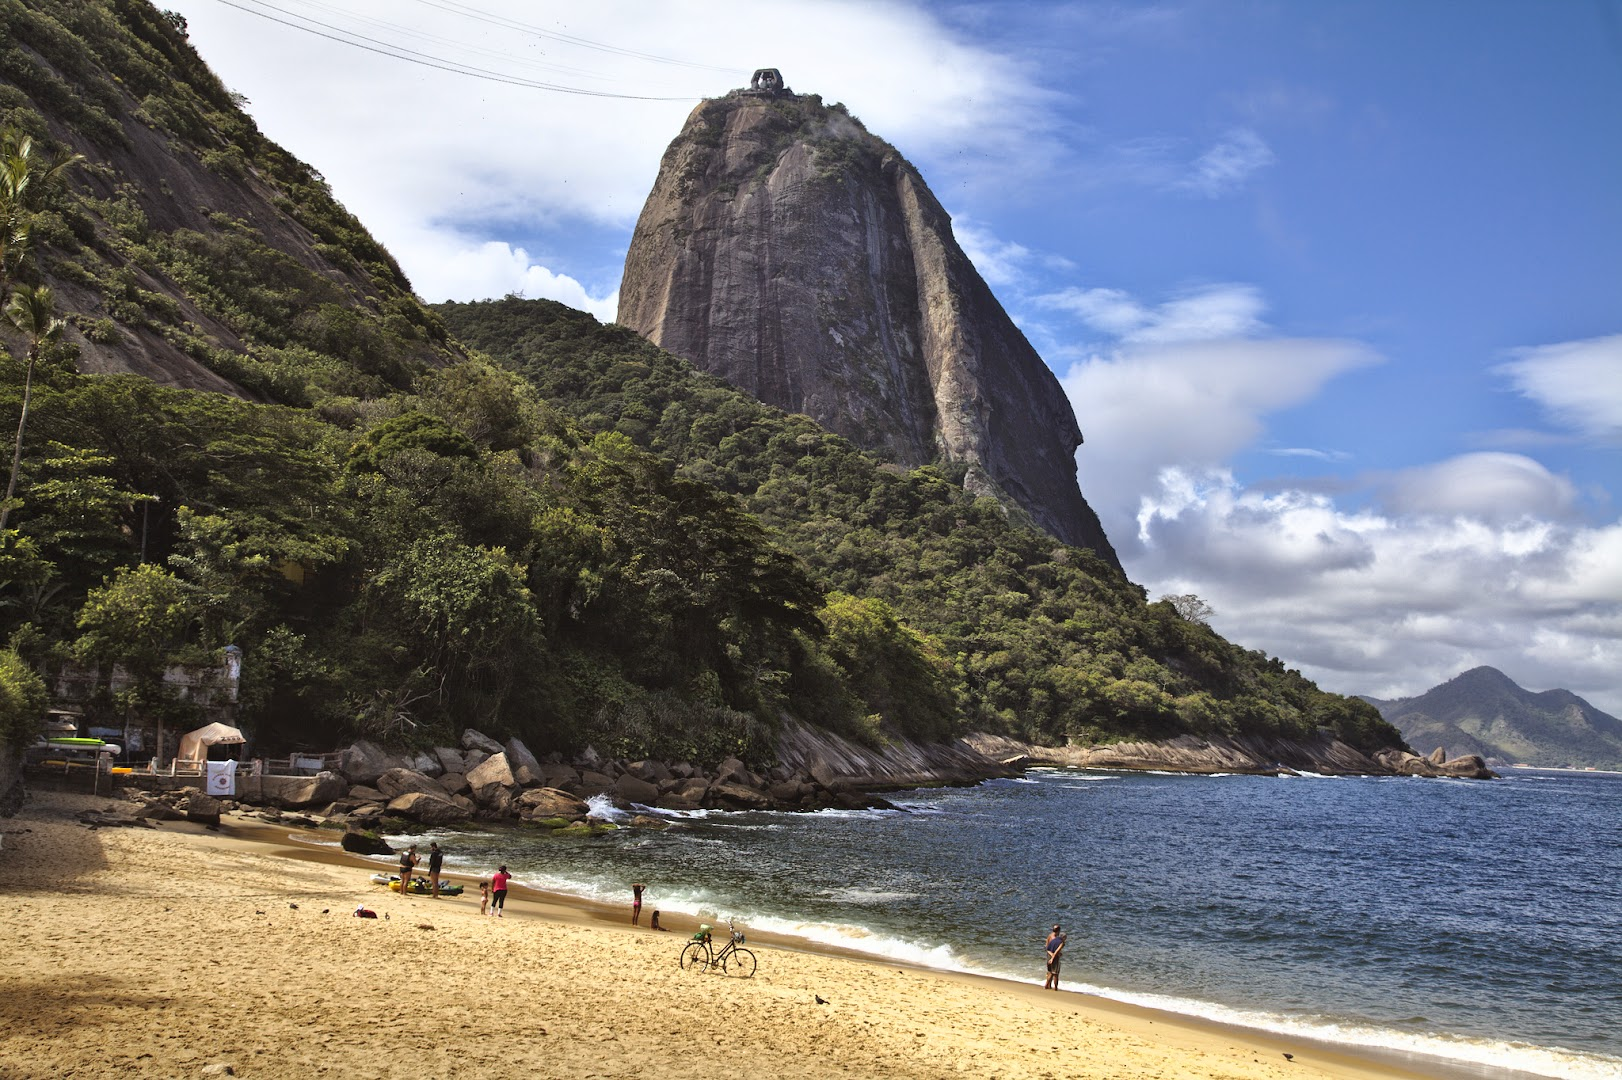 Back to Rio, looking how to get up the Sugar Loaf mountain